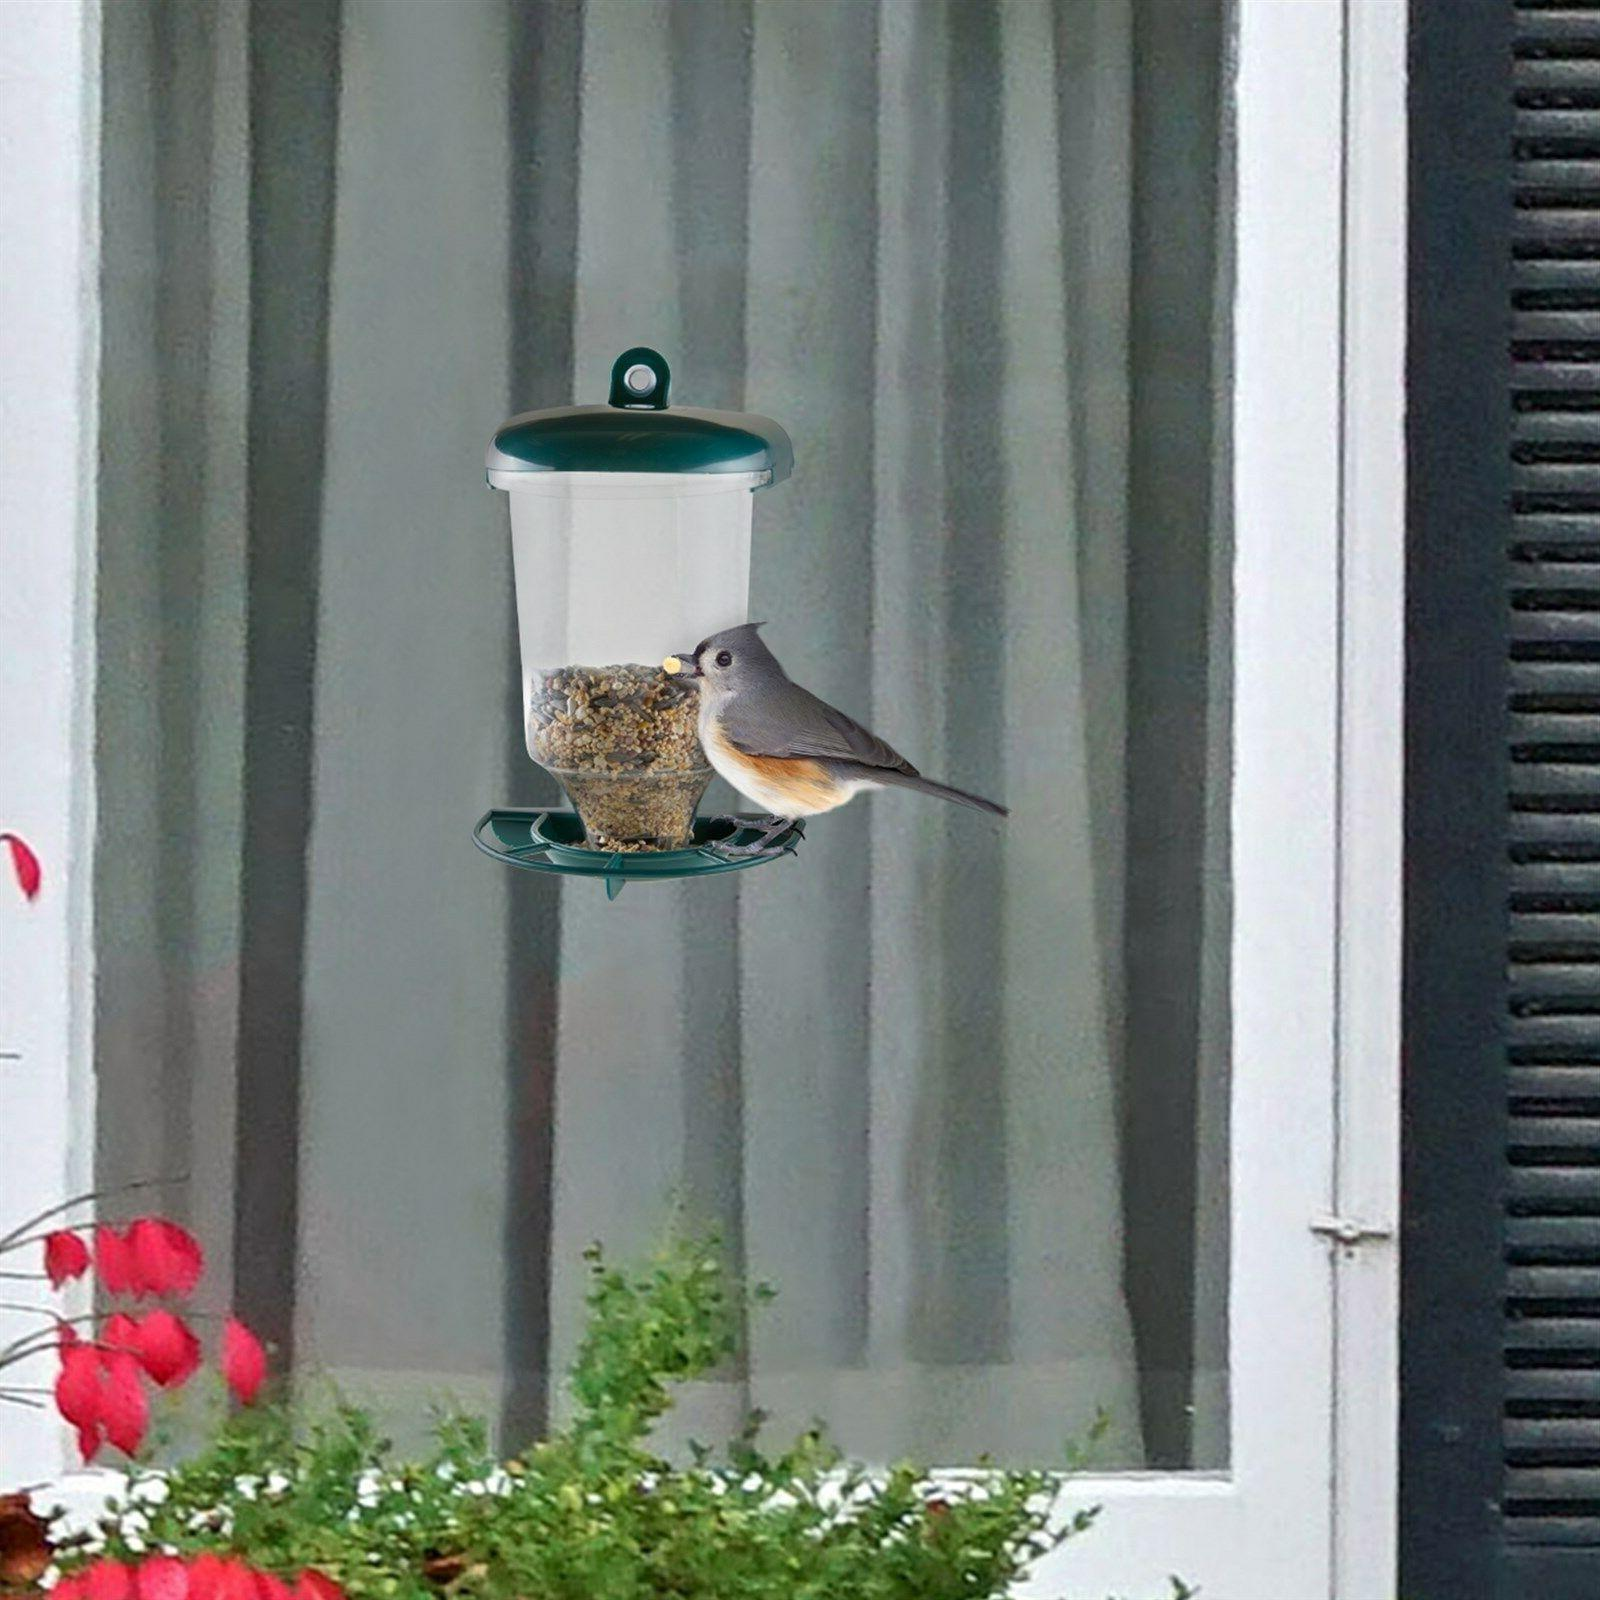 Pure Garden Window Feeder